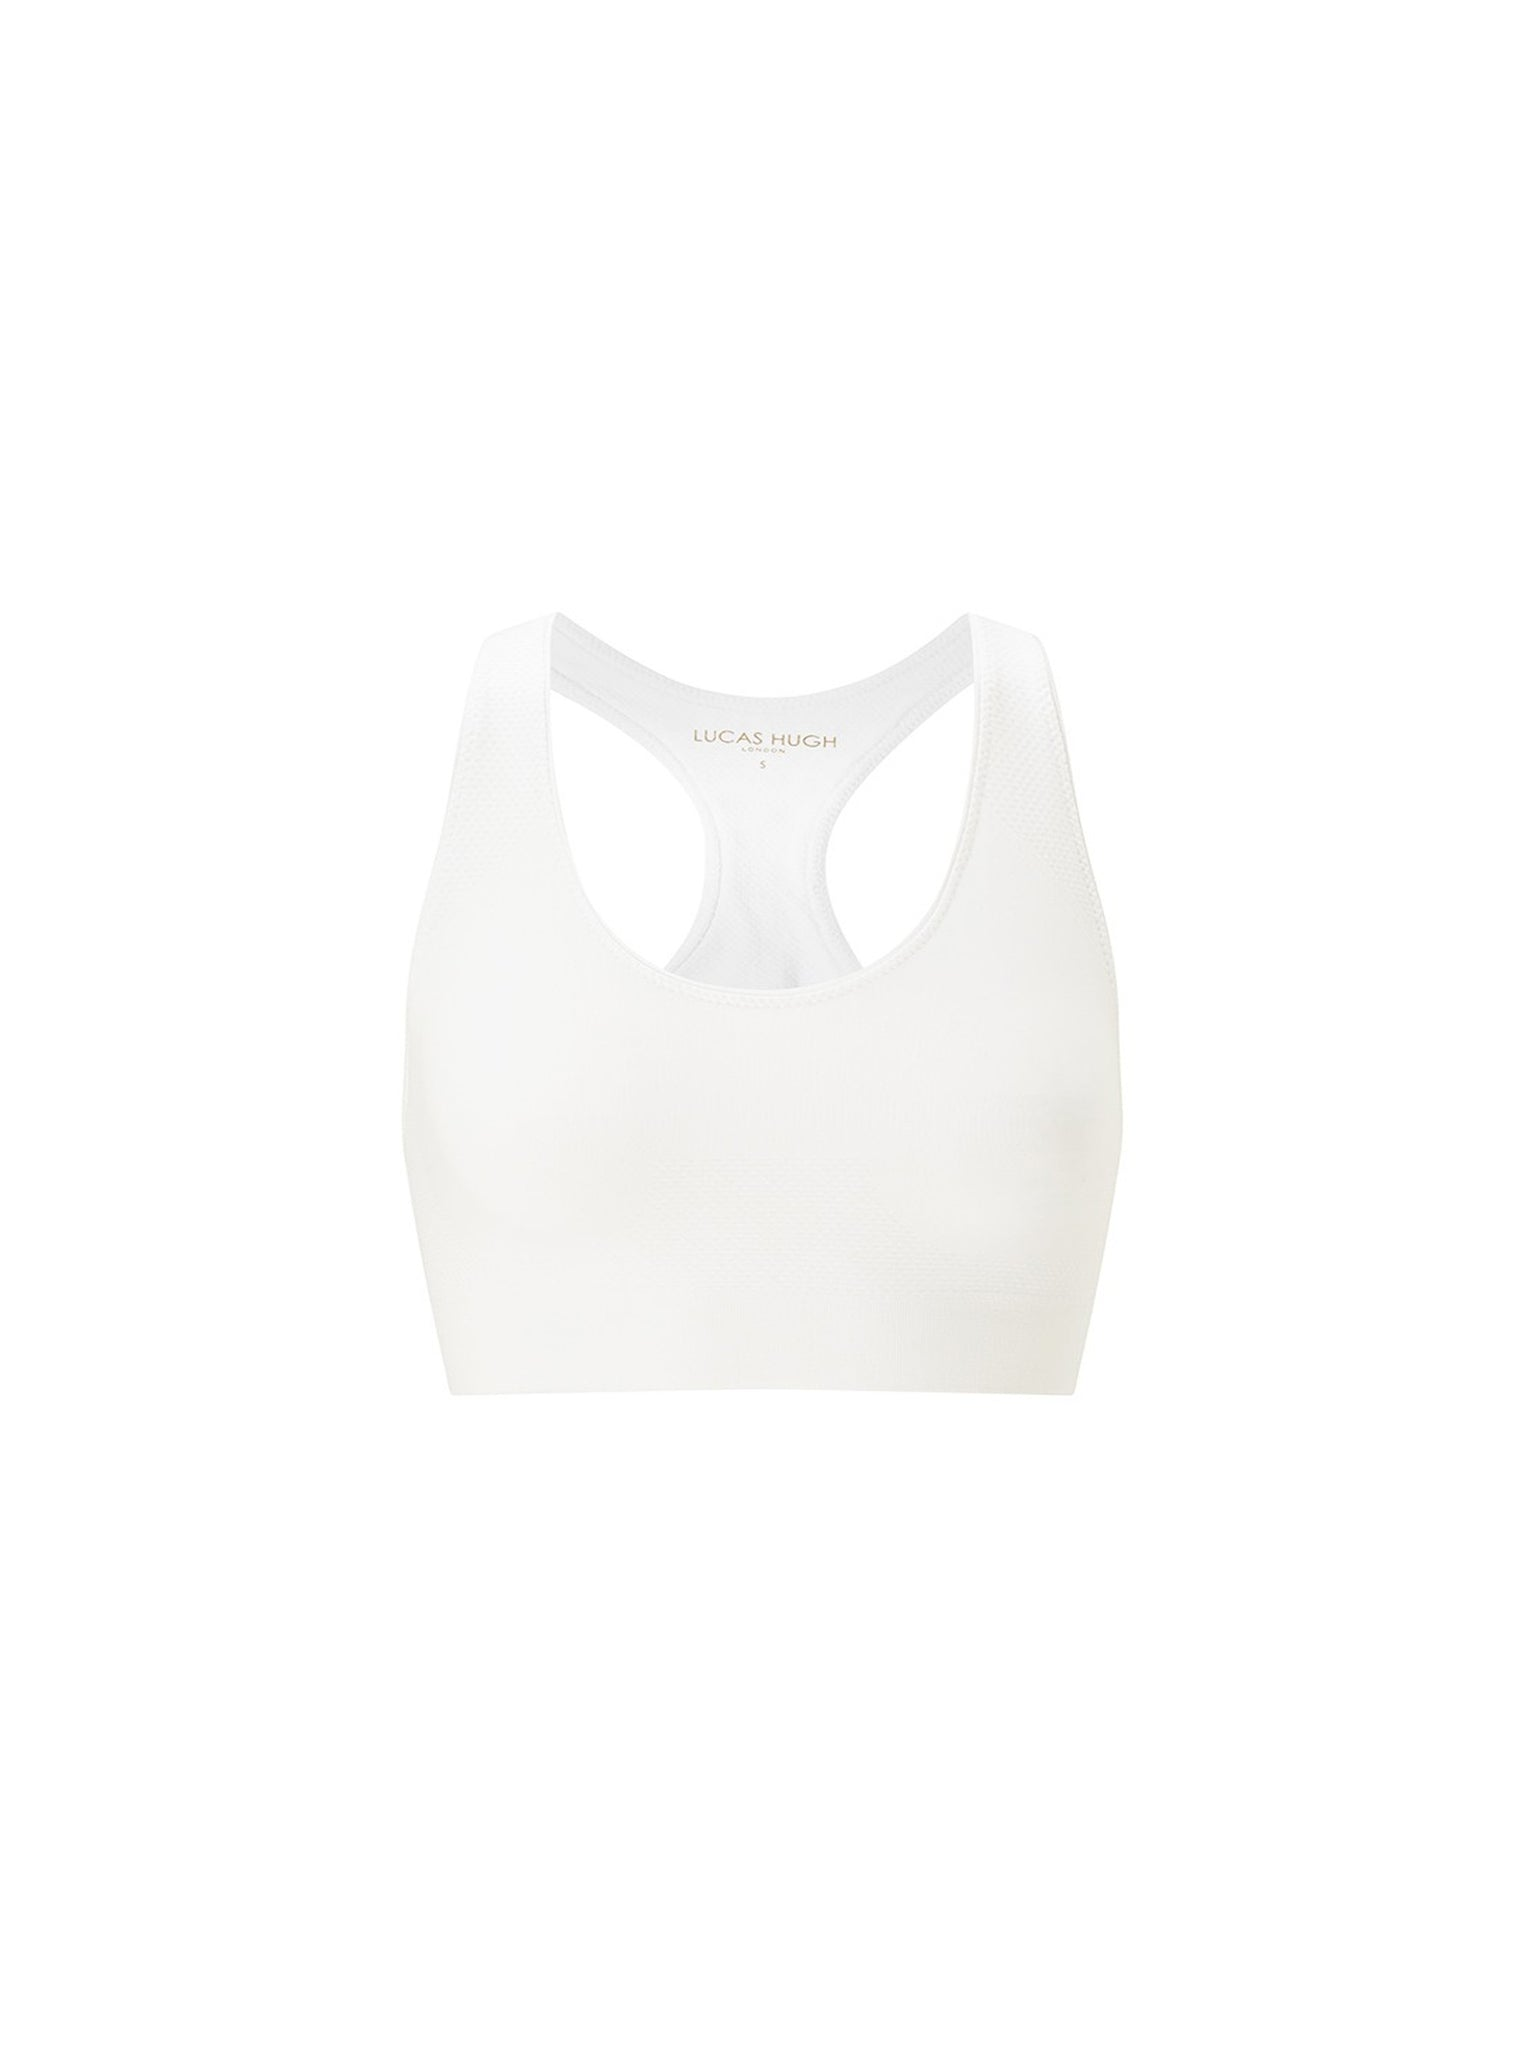 lucas hugh white technical knit sports racer back bra with ribbed hem